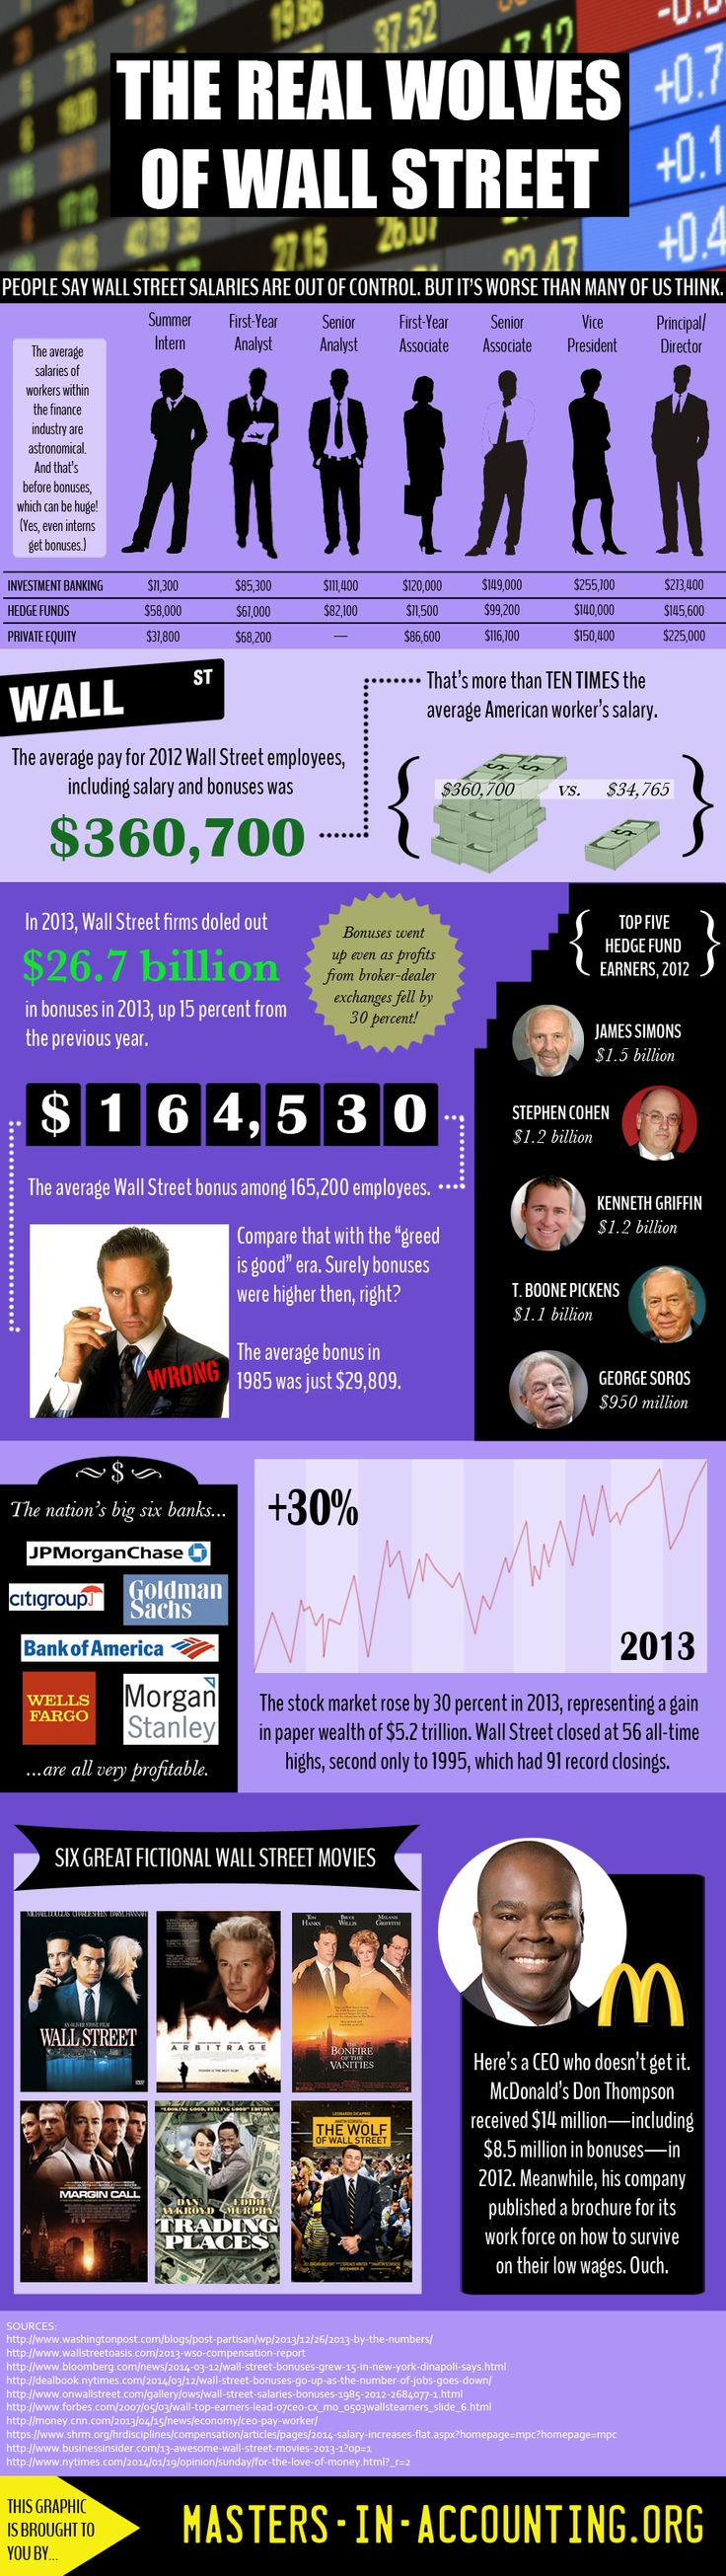 The Real Wolves of Wall Street (Infographic)